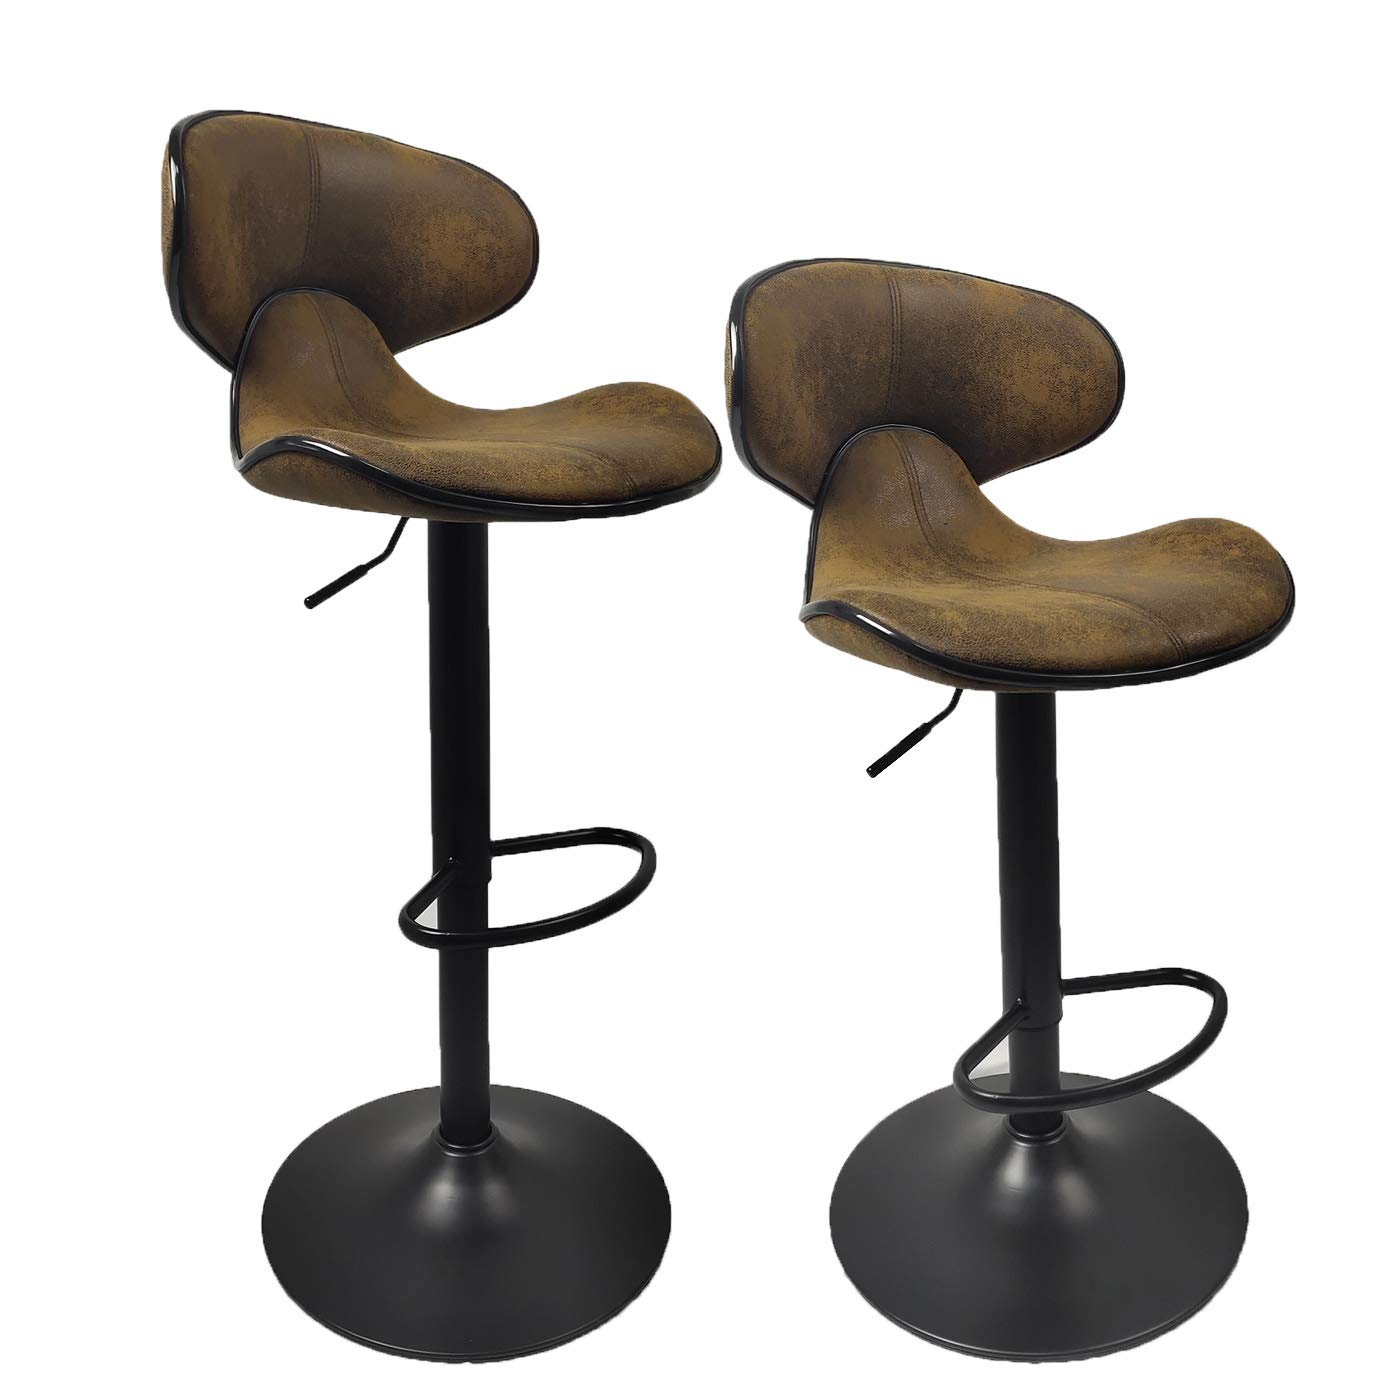 YEP HHO Adjustable Bar Stools,Set of 2 Dining Chairs with Back,Pub Kitchen Counter Height, Retro Brown (Brown)